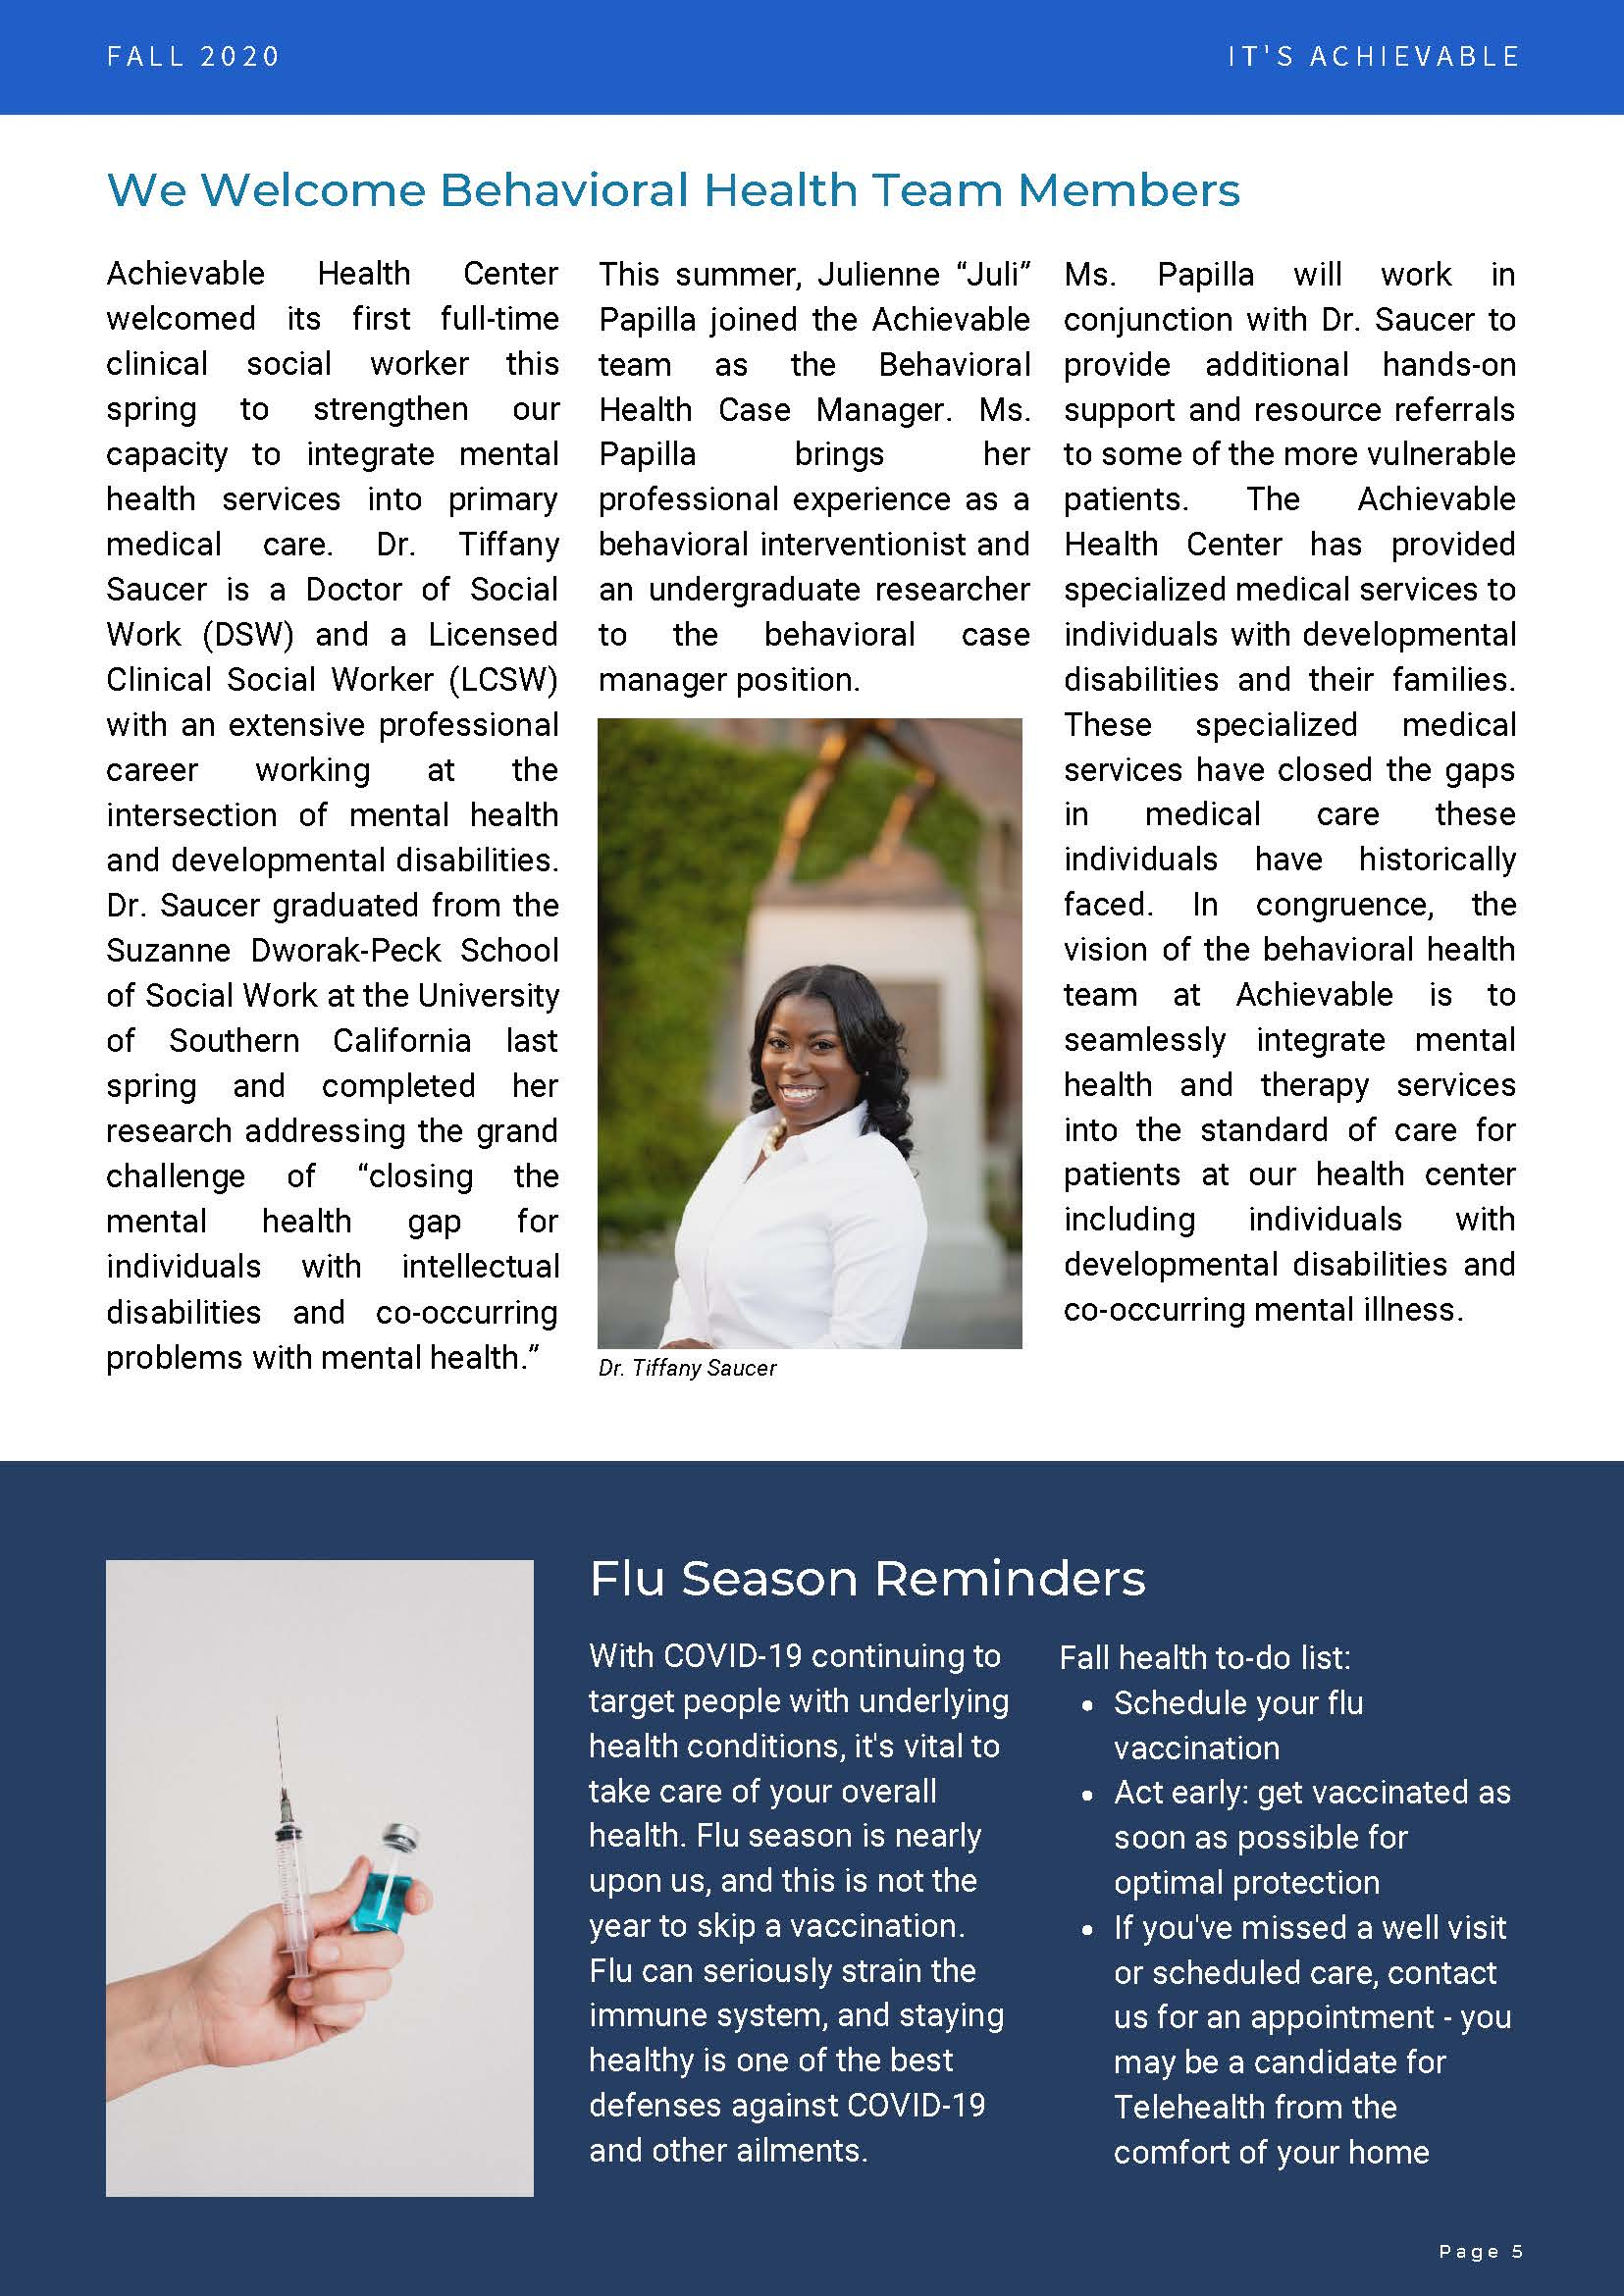 Copy of Achievable Fall 2020 Newsletter FINAL (1)_Page_5